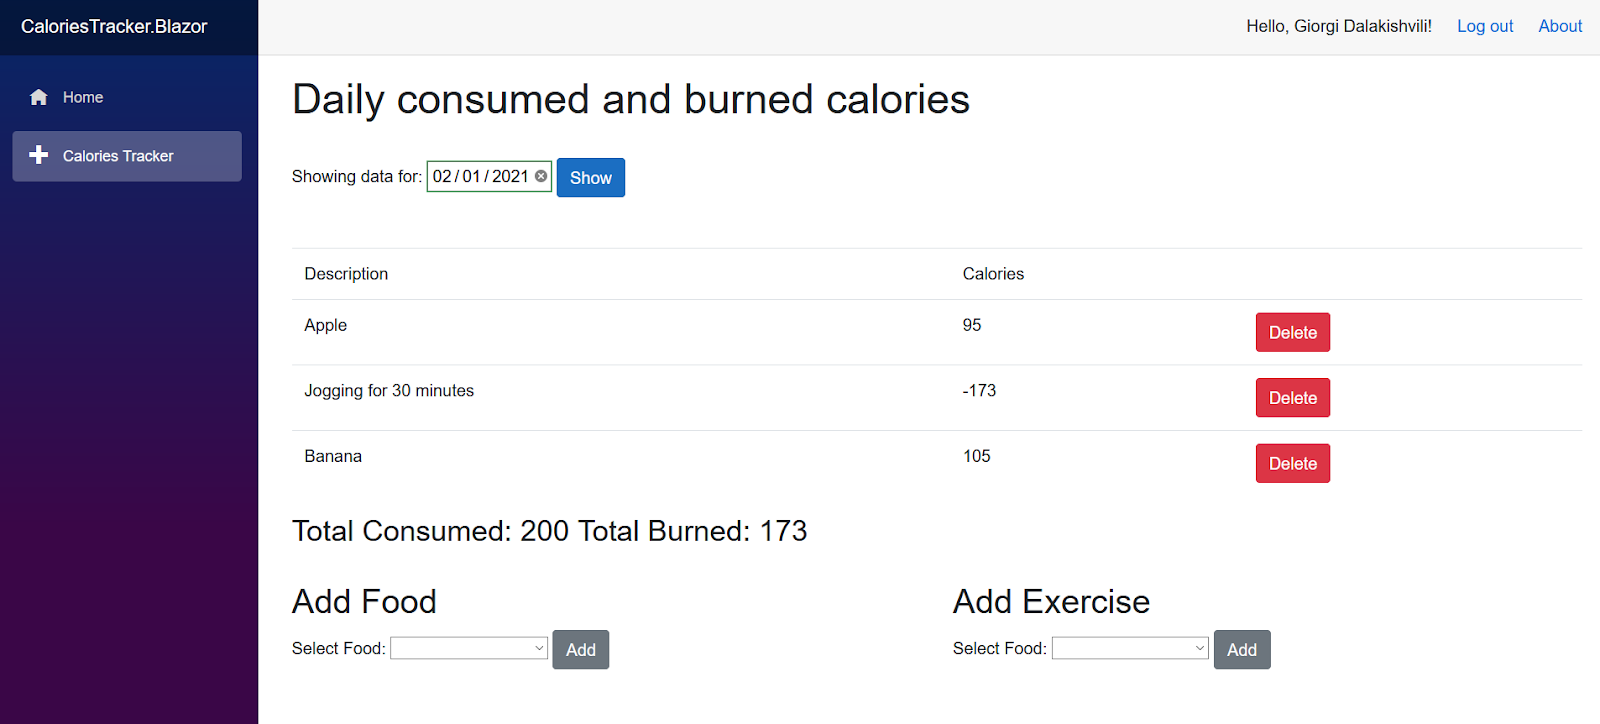 Screenshot of CaloriesTracker interface showing 'Daily consumed and burned calories'